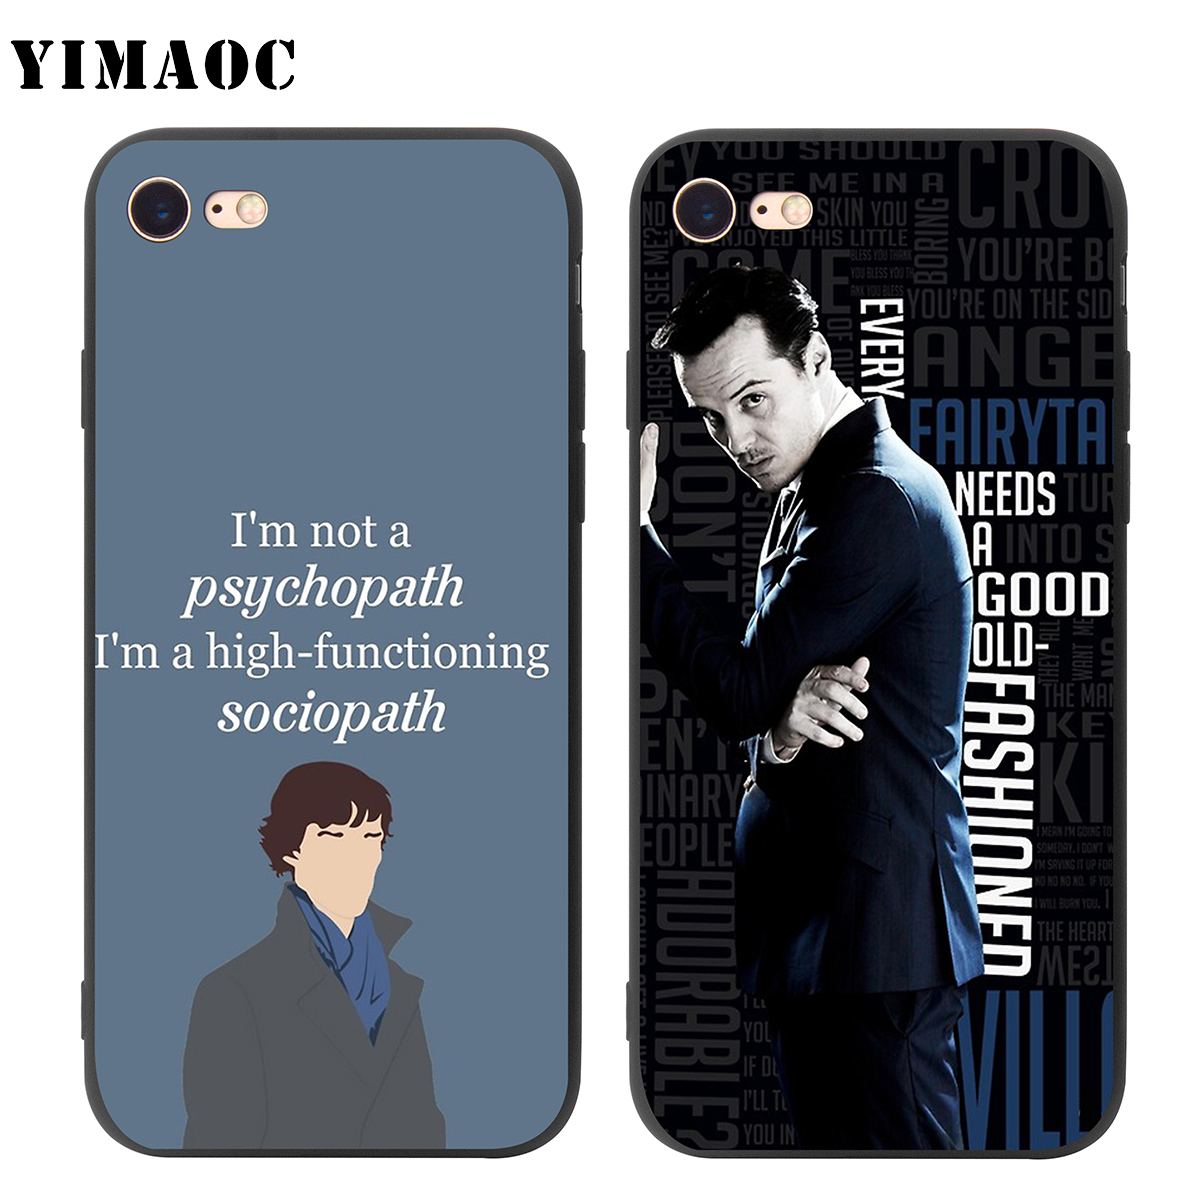 Yimaoc Doctor Strange Benedict Cumberbatch Soft Silicone Phone Case For Iphone Xs Max Xr X 6 6s 7 8 Plus 5 5s Se 10 Tpu Cover A Great Variety Of Goods Cellphones & Telecommunications